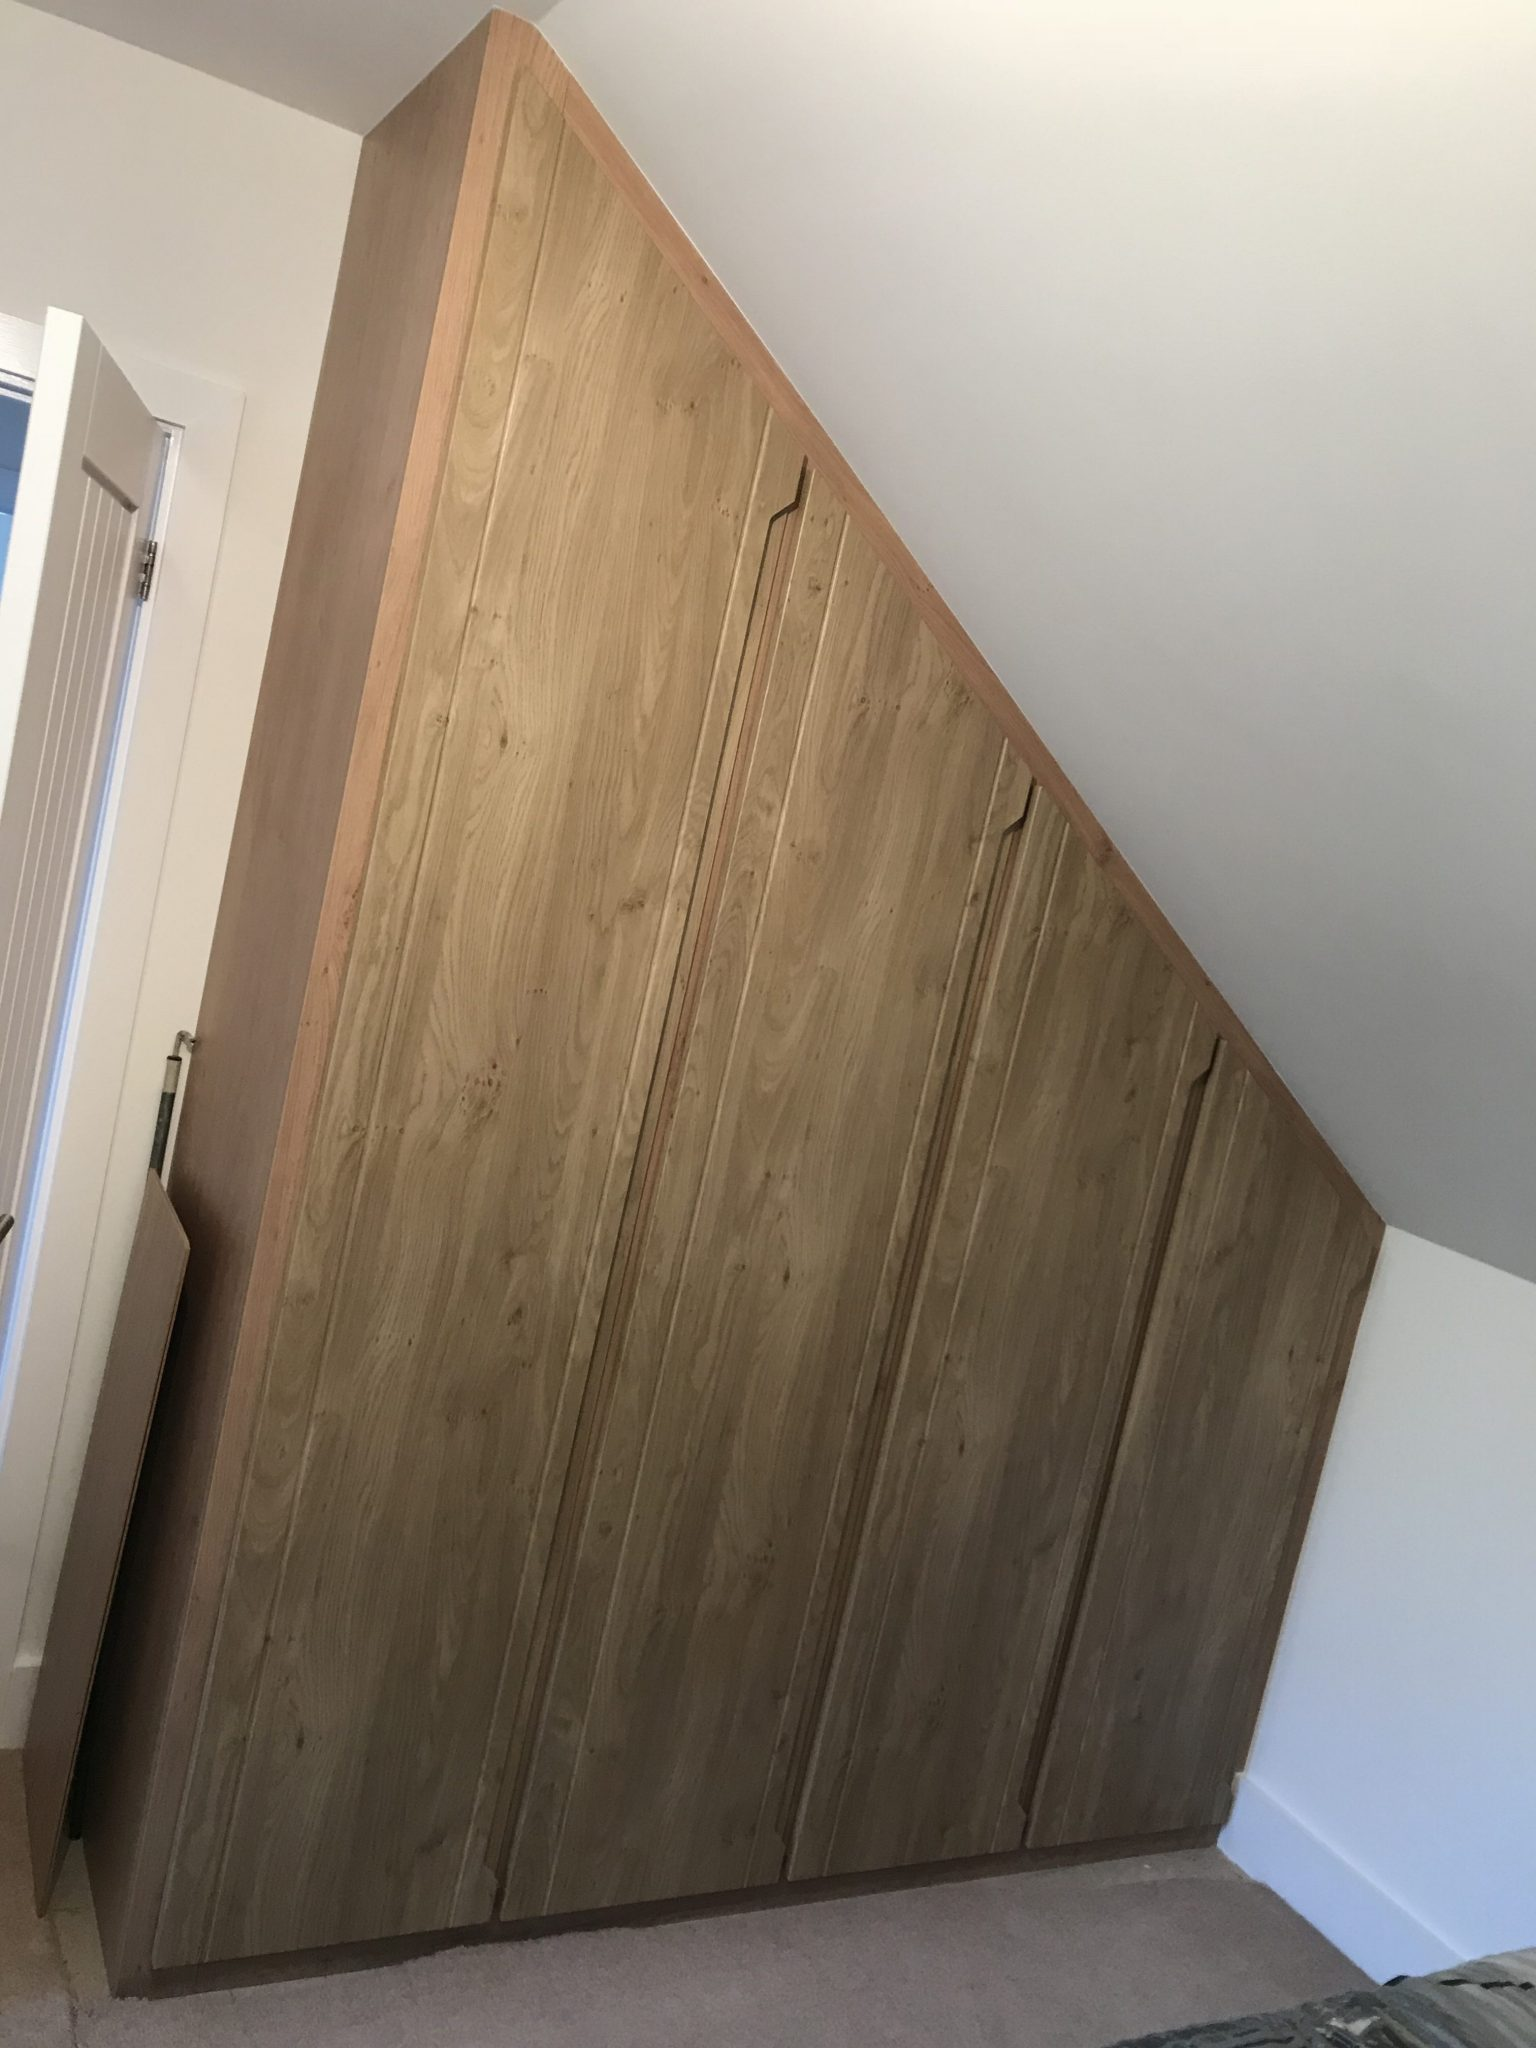 angled made to measure bedroom furniture